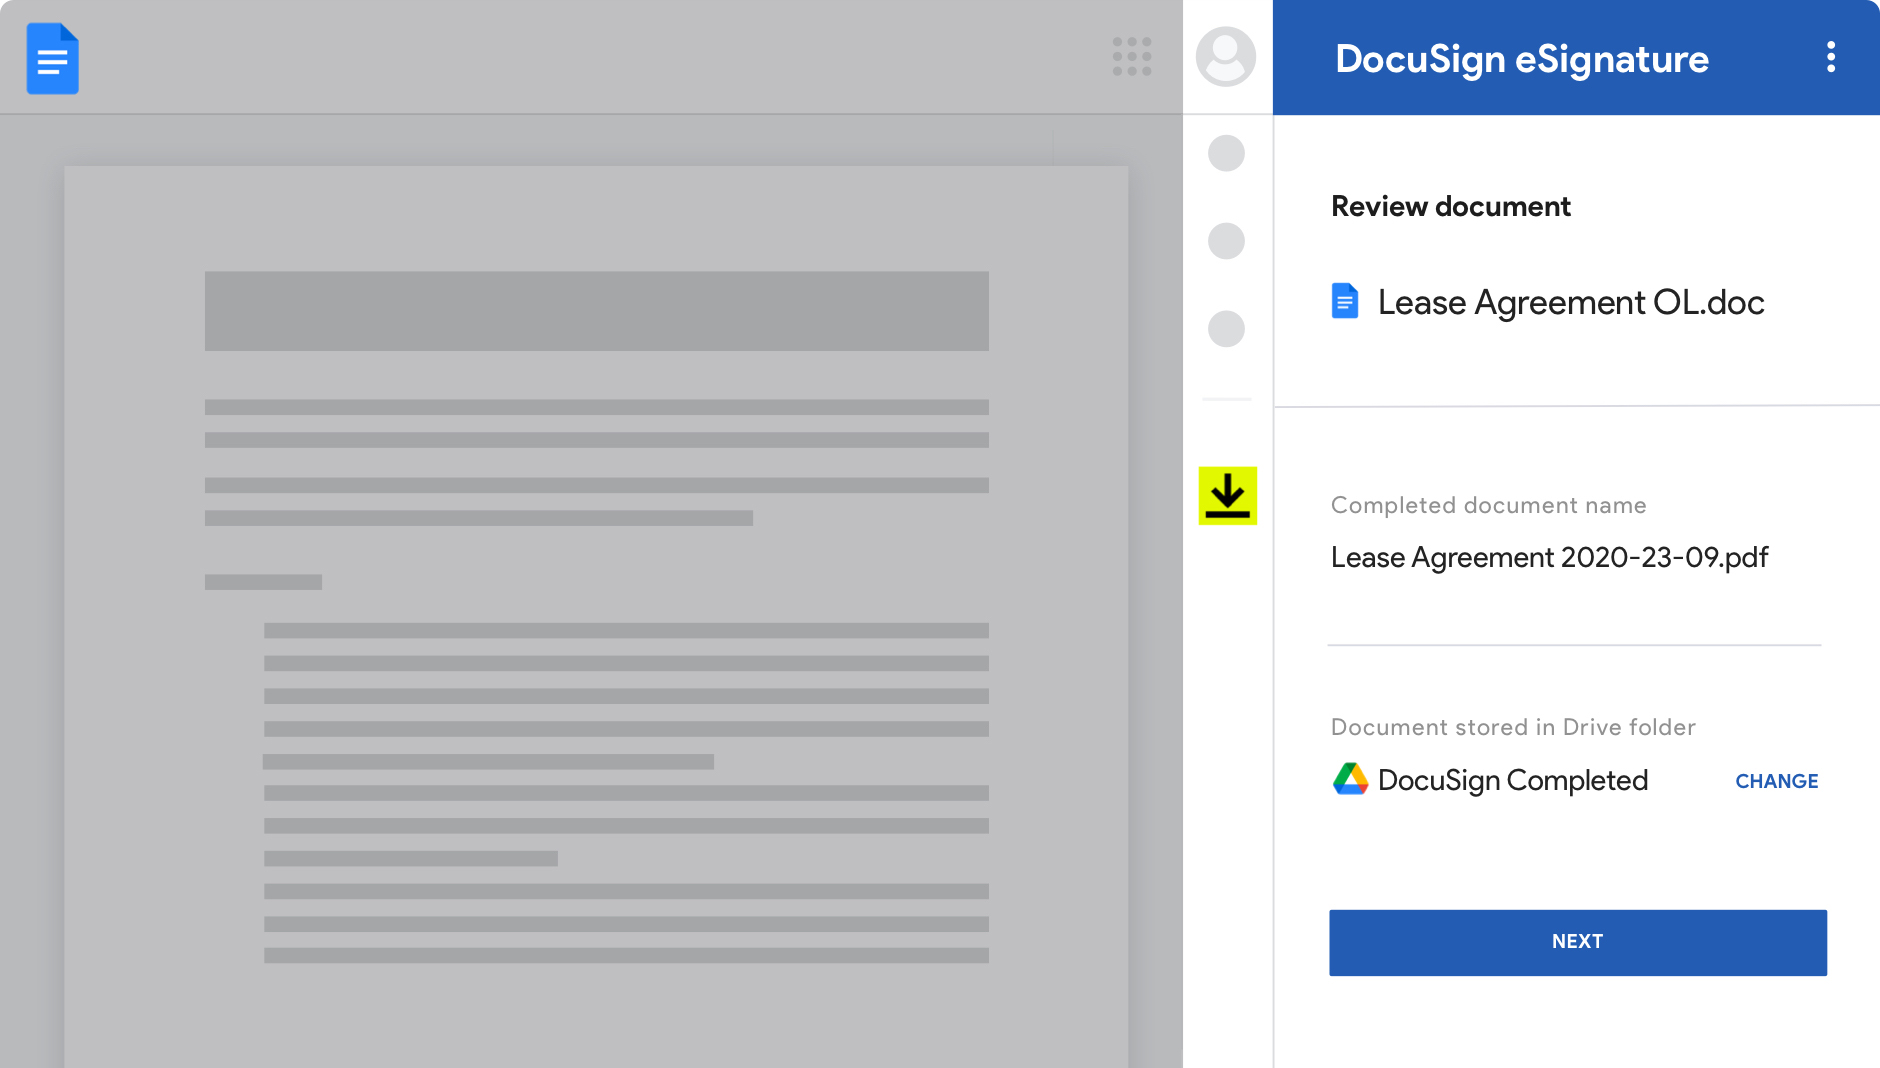 Google Docs with DocuSign eSignature showing agreements and their status.